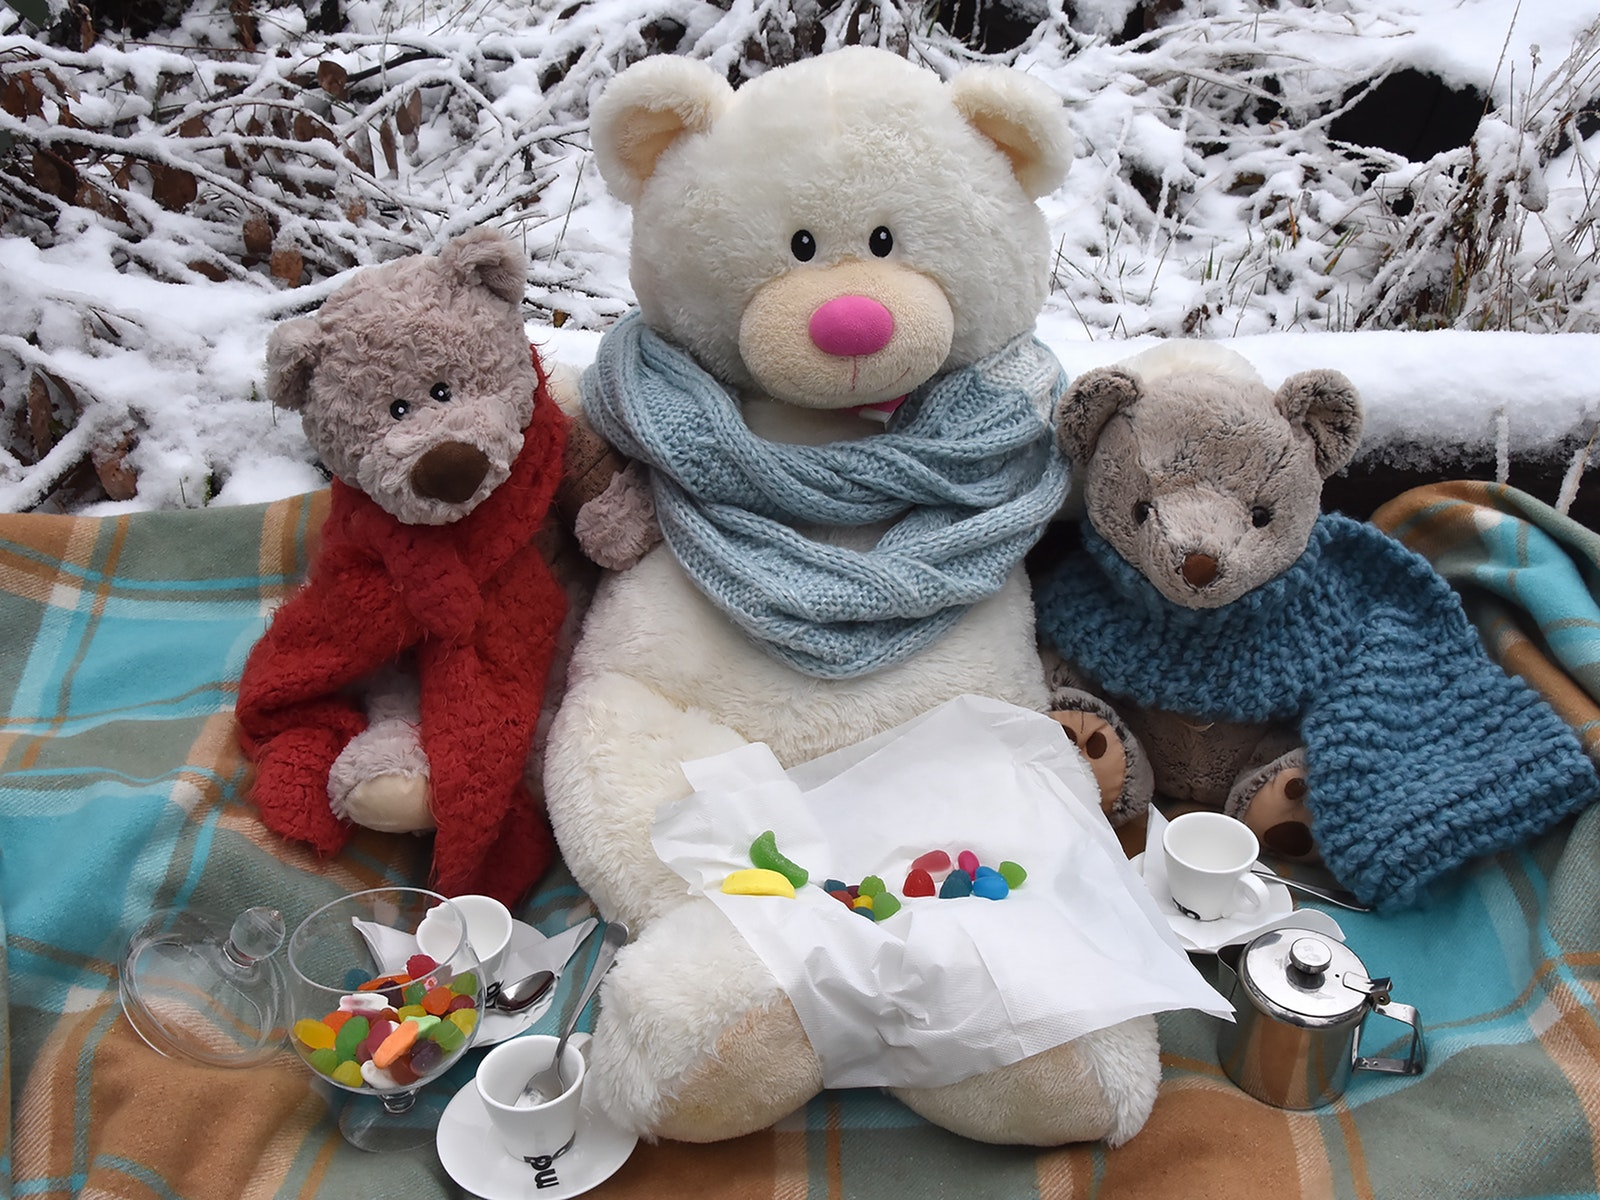 Three teddy bears enjoying a picnic on a rug in the snow